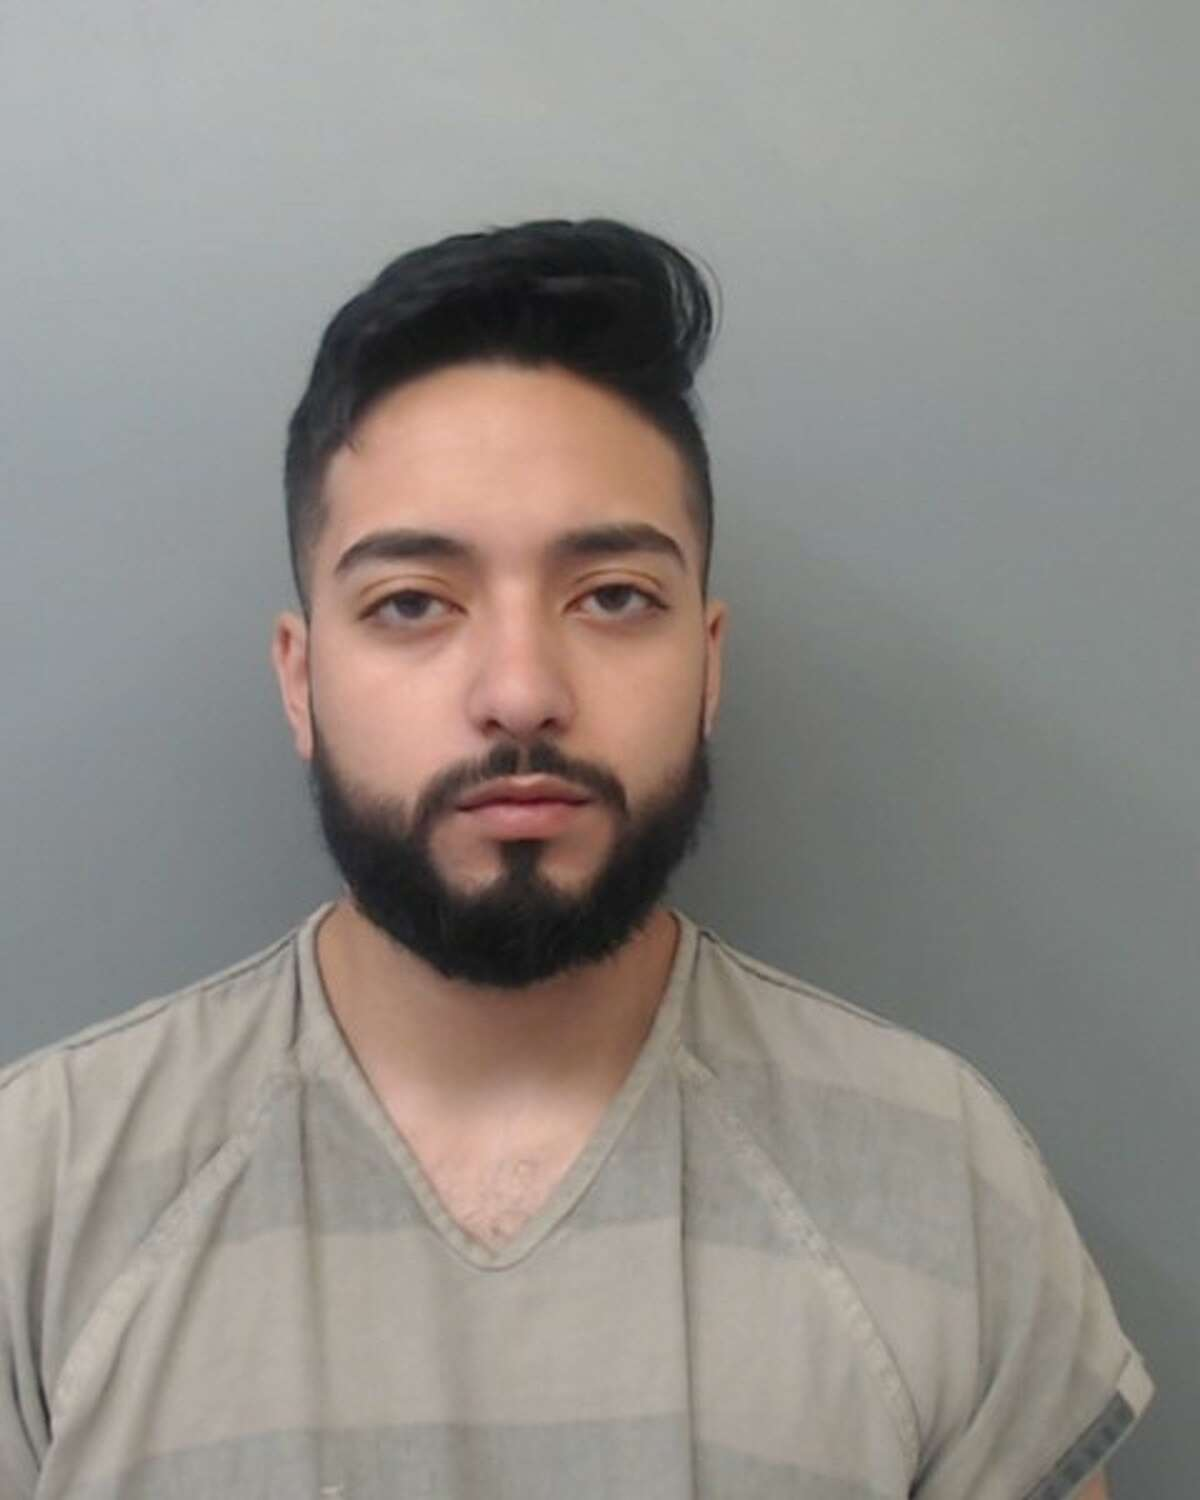 Isaiah Camacho, 21, was arrested and charged with possession of a controlled substance and possession of marijuana.